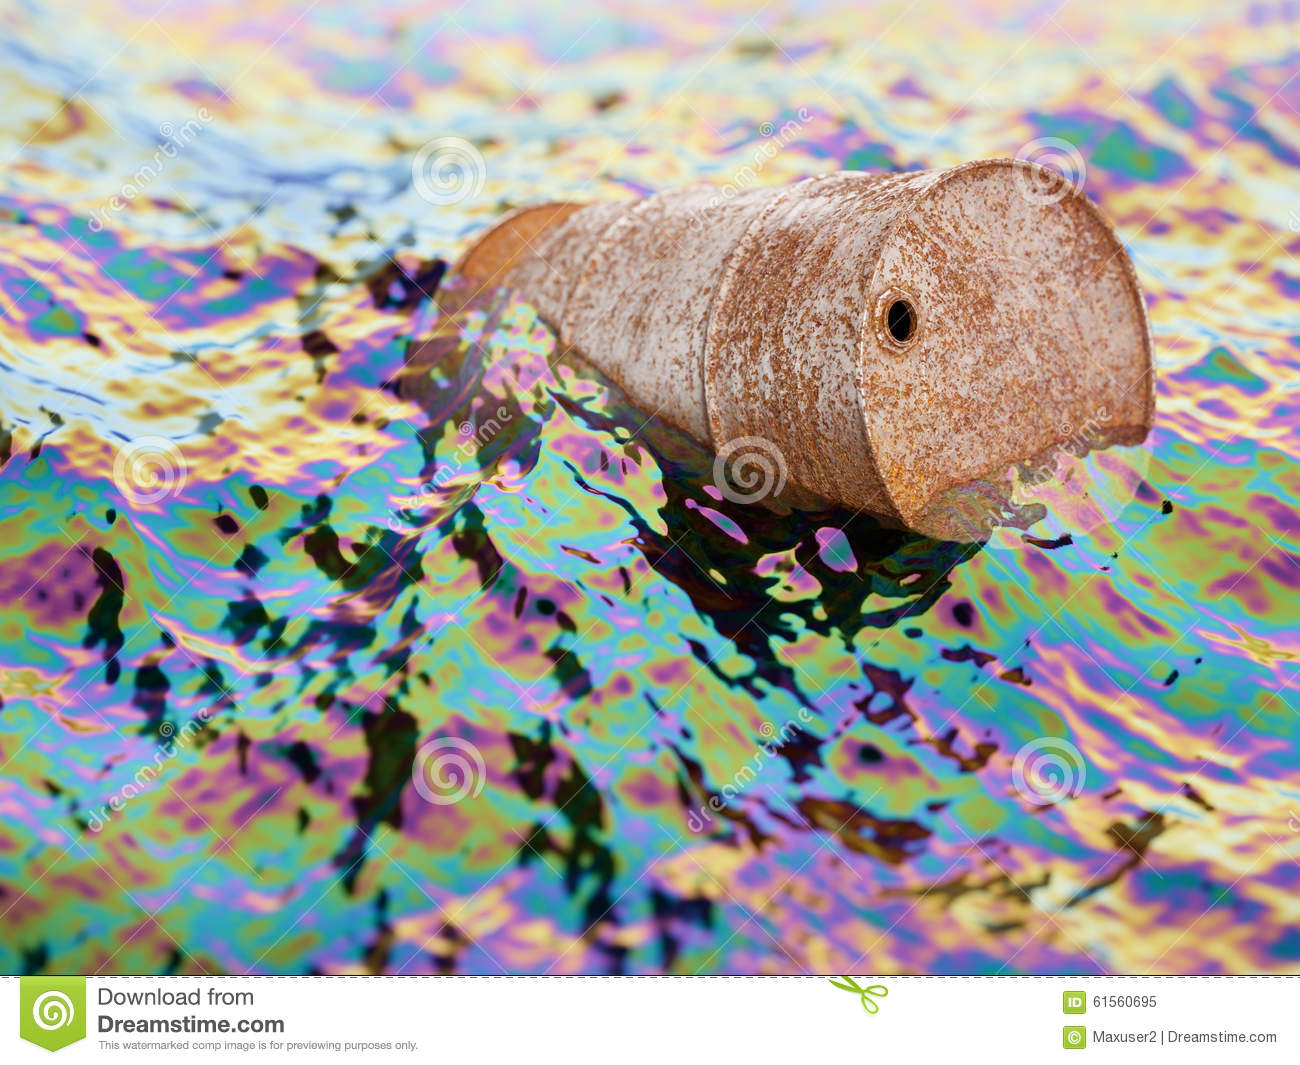 Old rusty barrel in polluted water with oil film